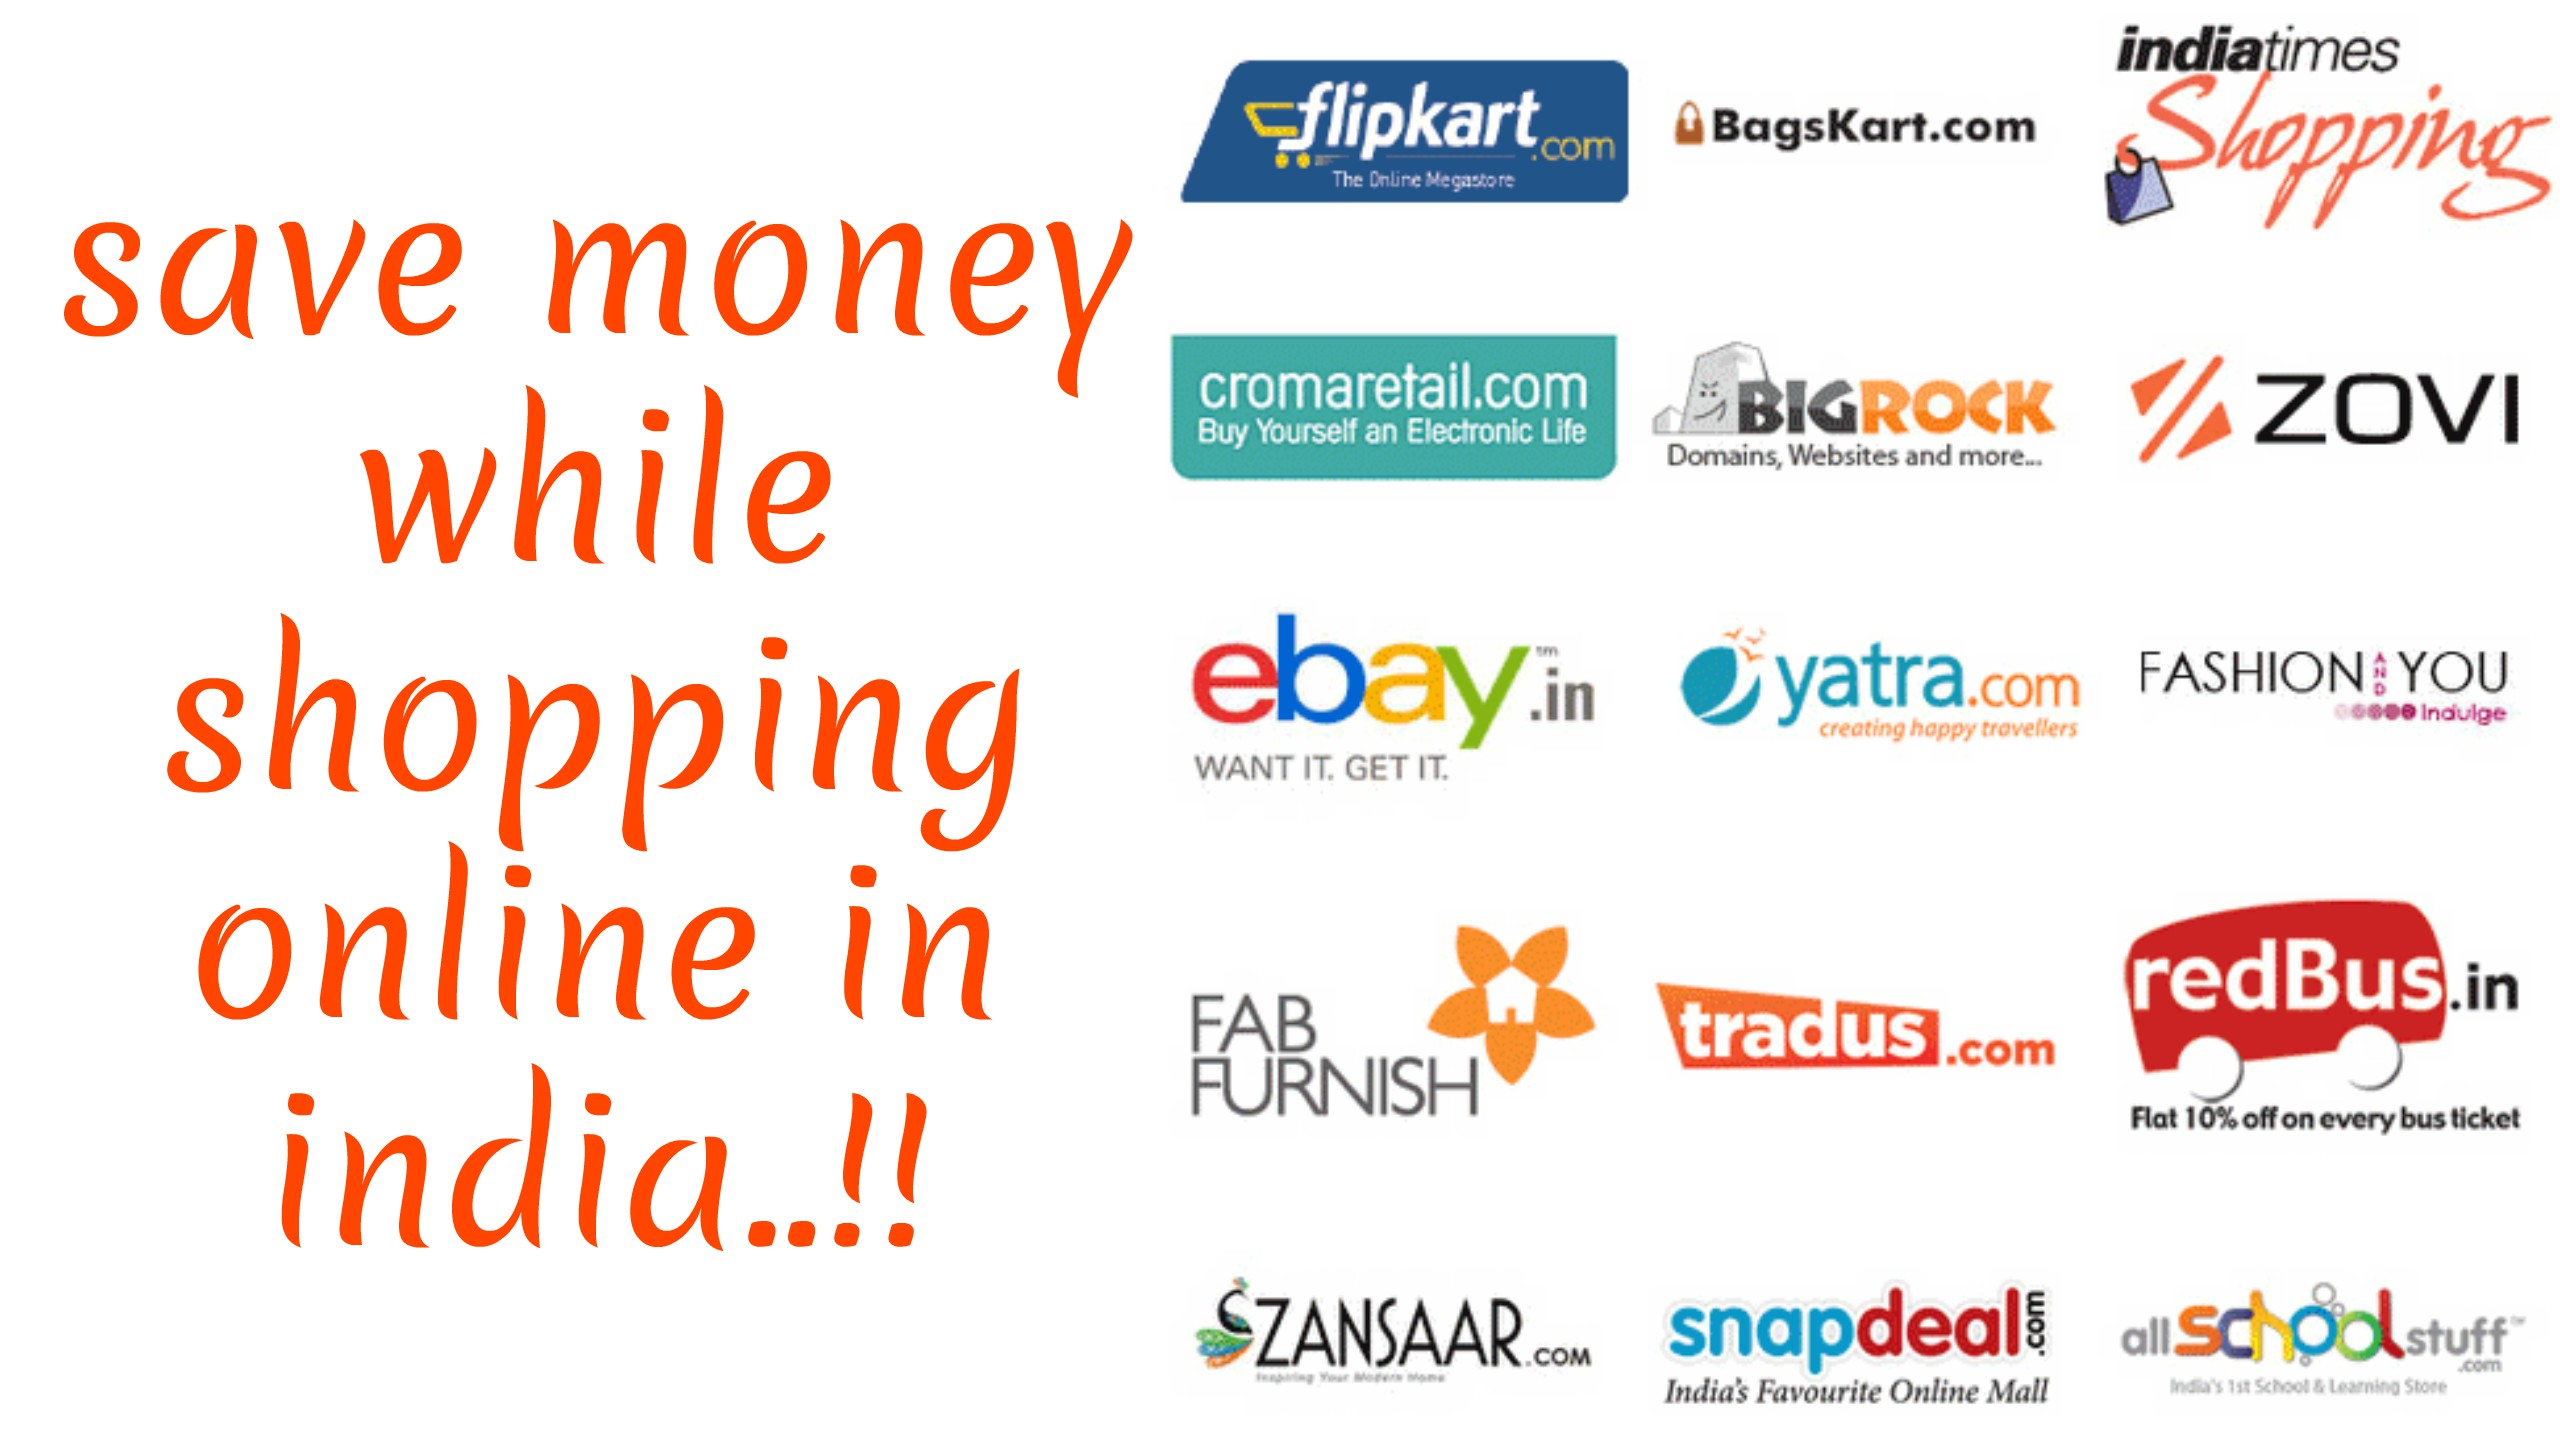 online shopping in india Take advantage of great online shopping deals in india with paypal click here to check out local deals on electronics, accessories, clothing, and more.